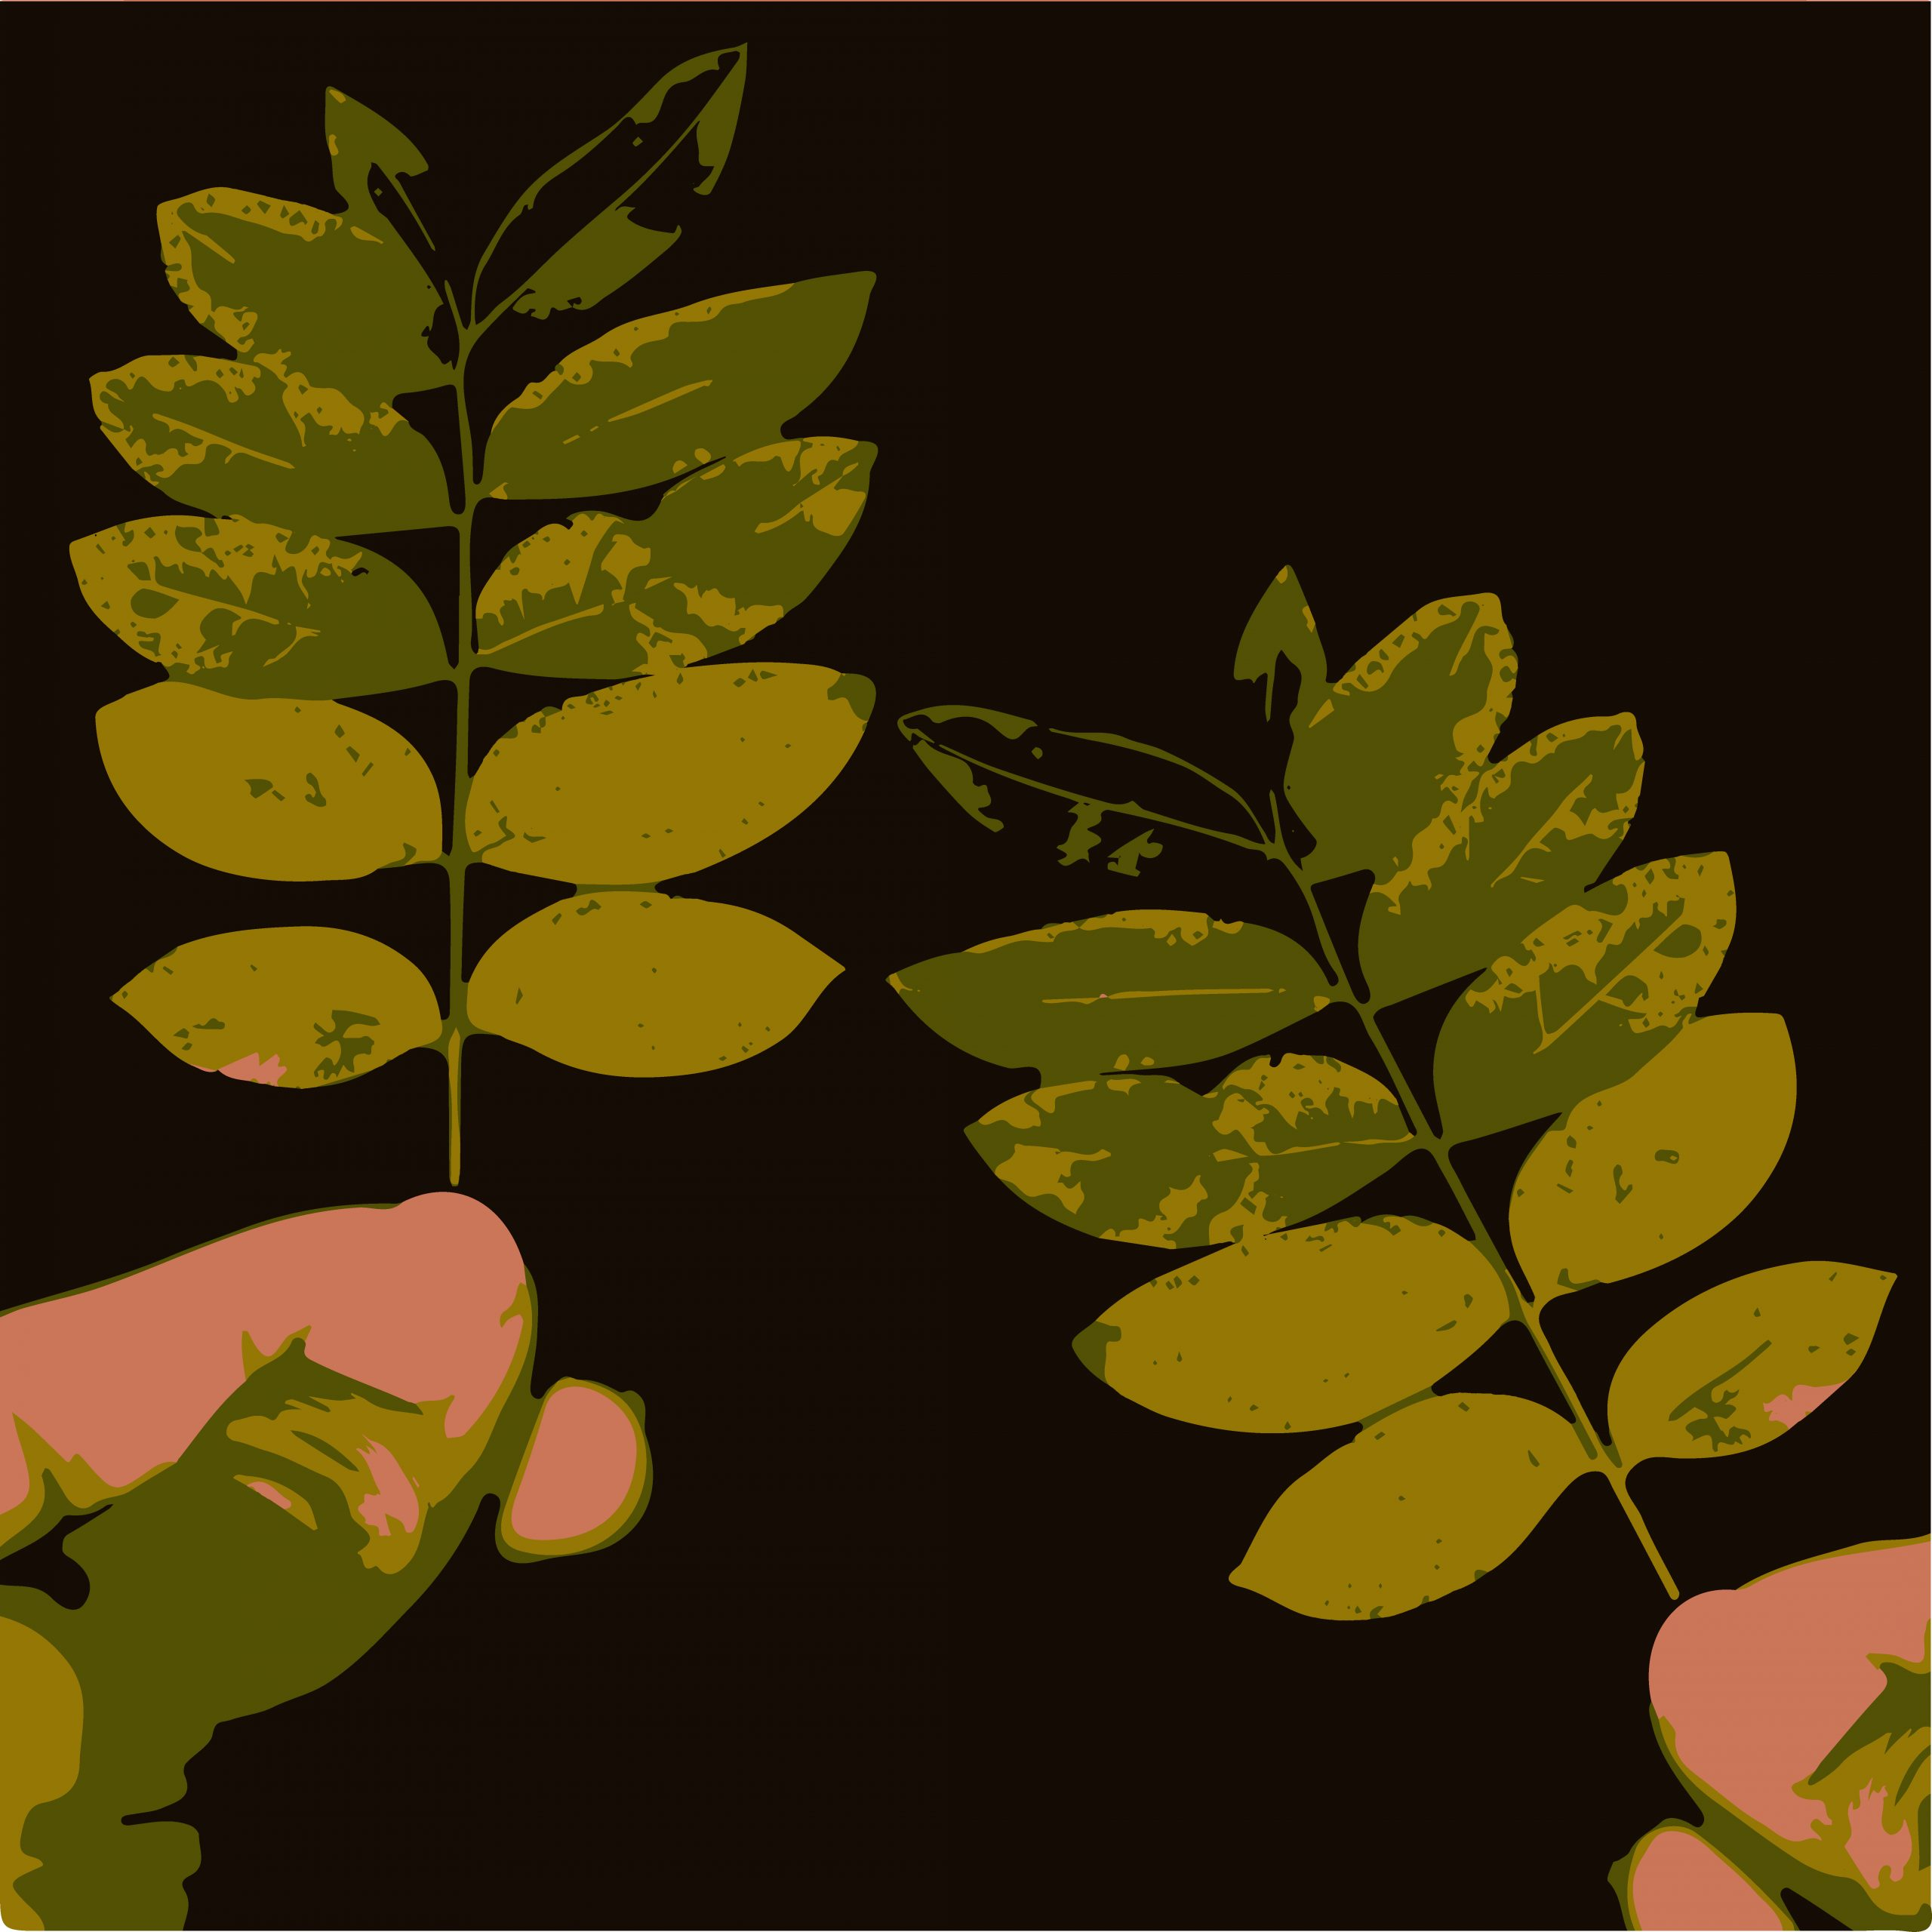 LEAF in hand ILLUSTRATION